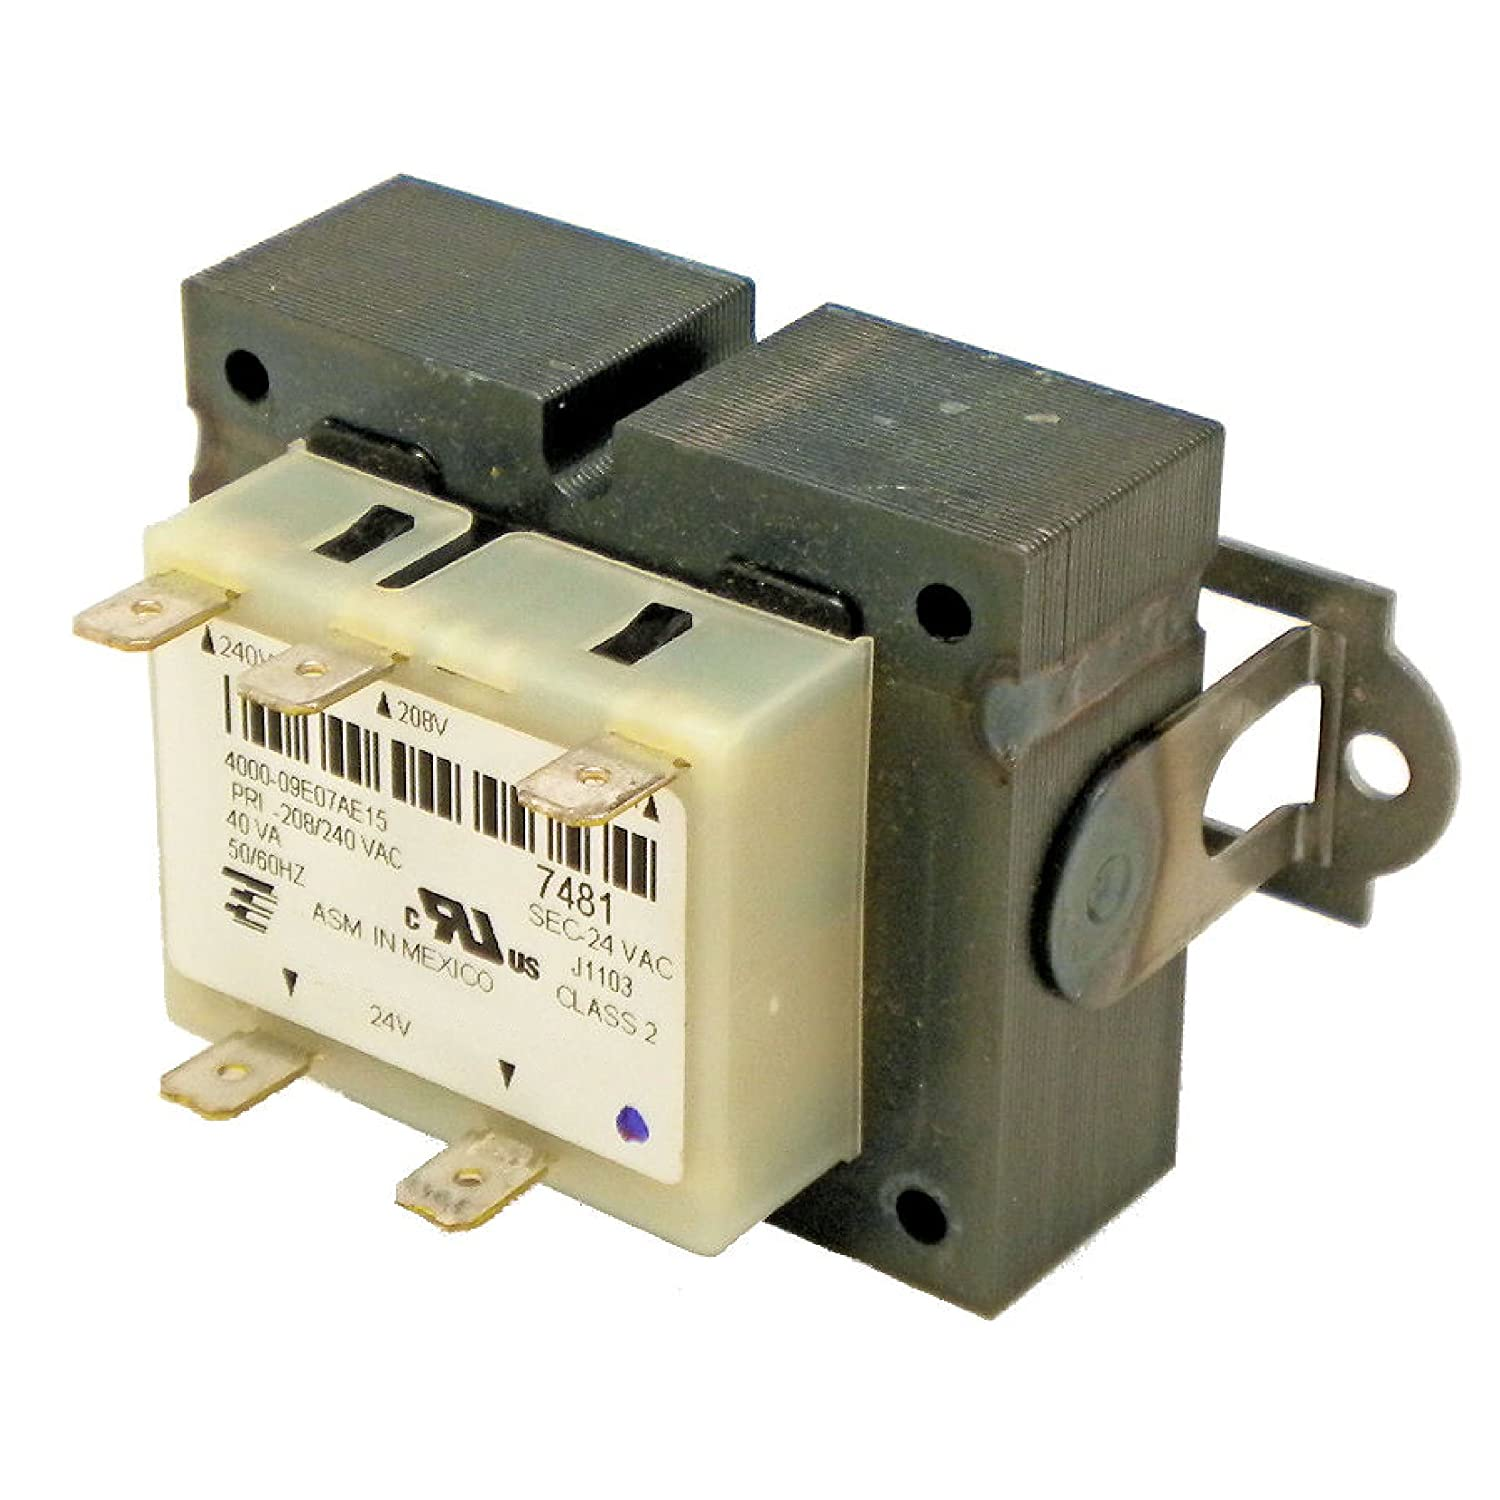 208 240v Primary 24v Secondary 40 Va Coleman Furnace Parts Wiring In Parallel